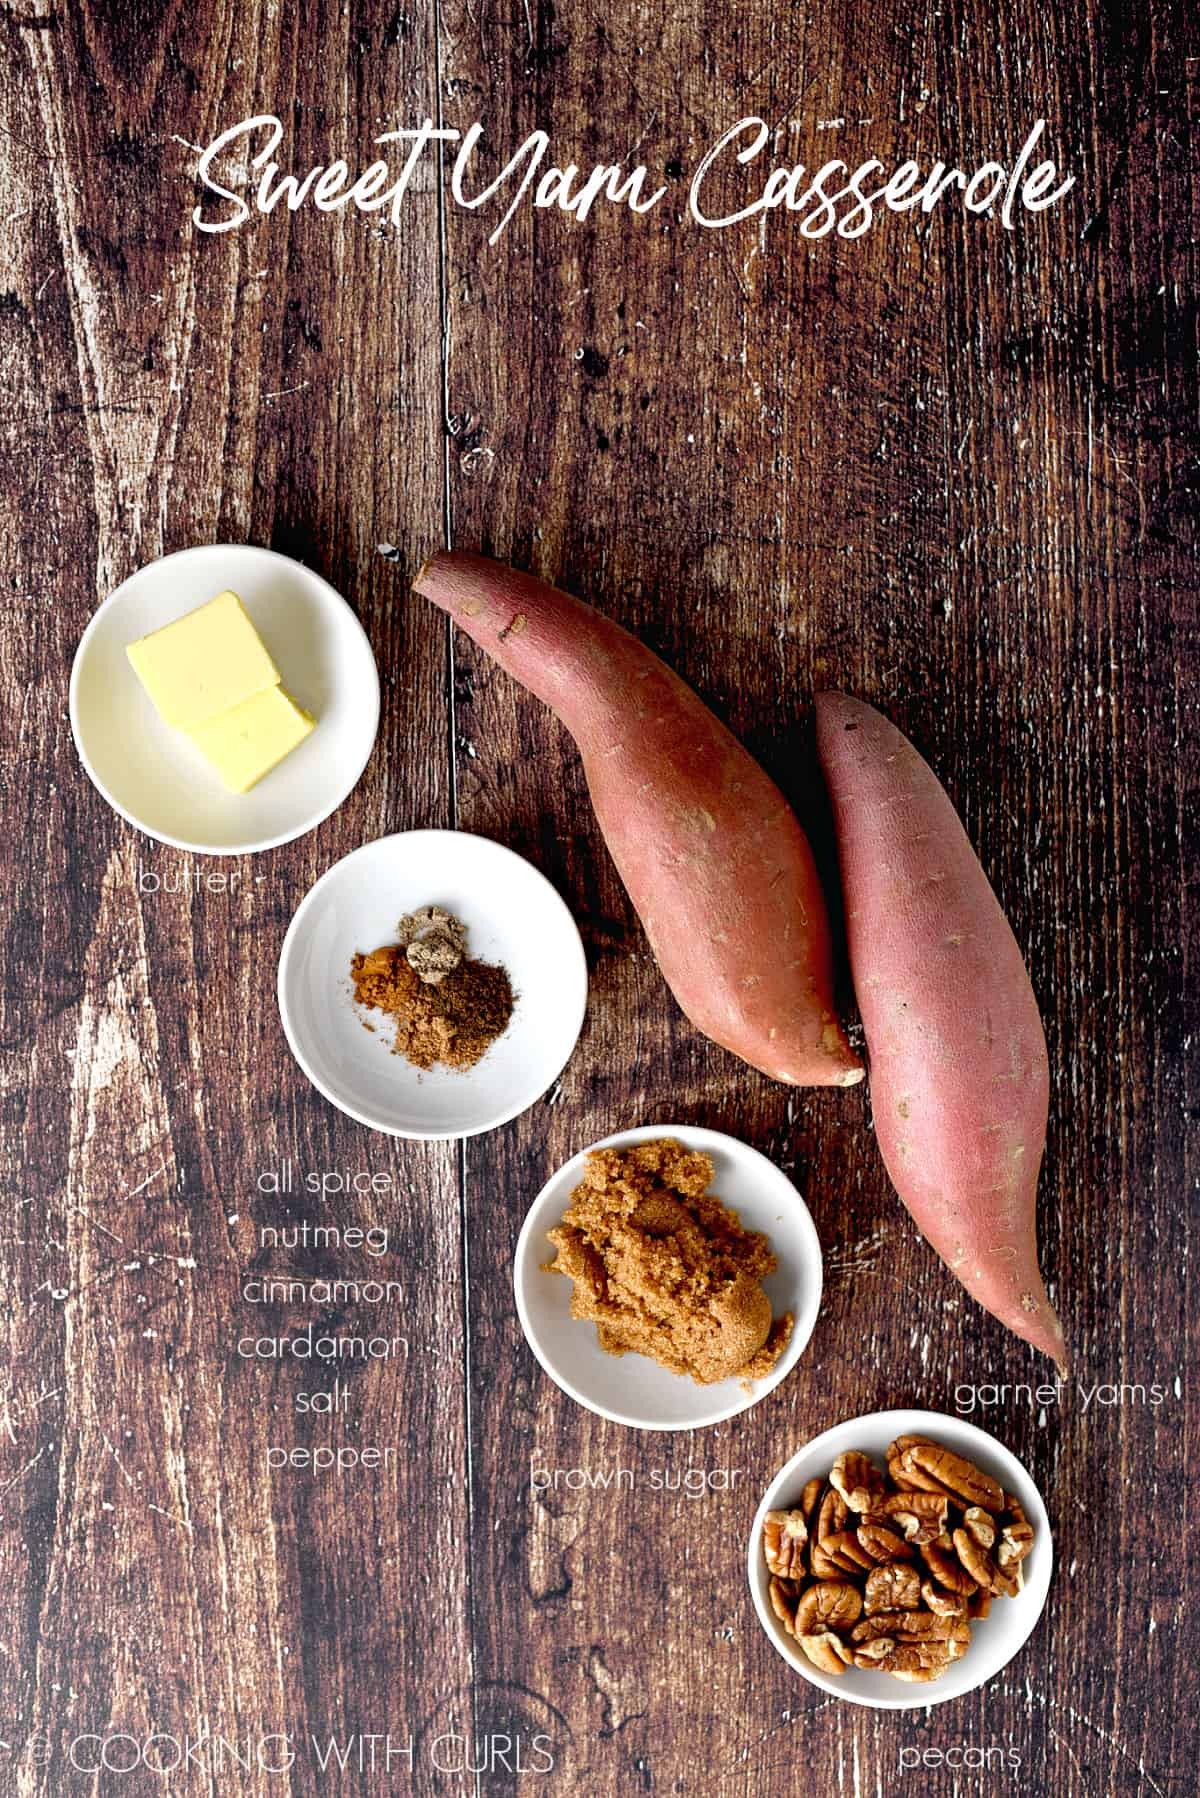 Sweet Yam Casserole ingredients; butter, spices, brown sugar, pecans and garnet yams.